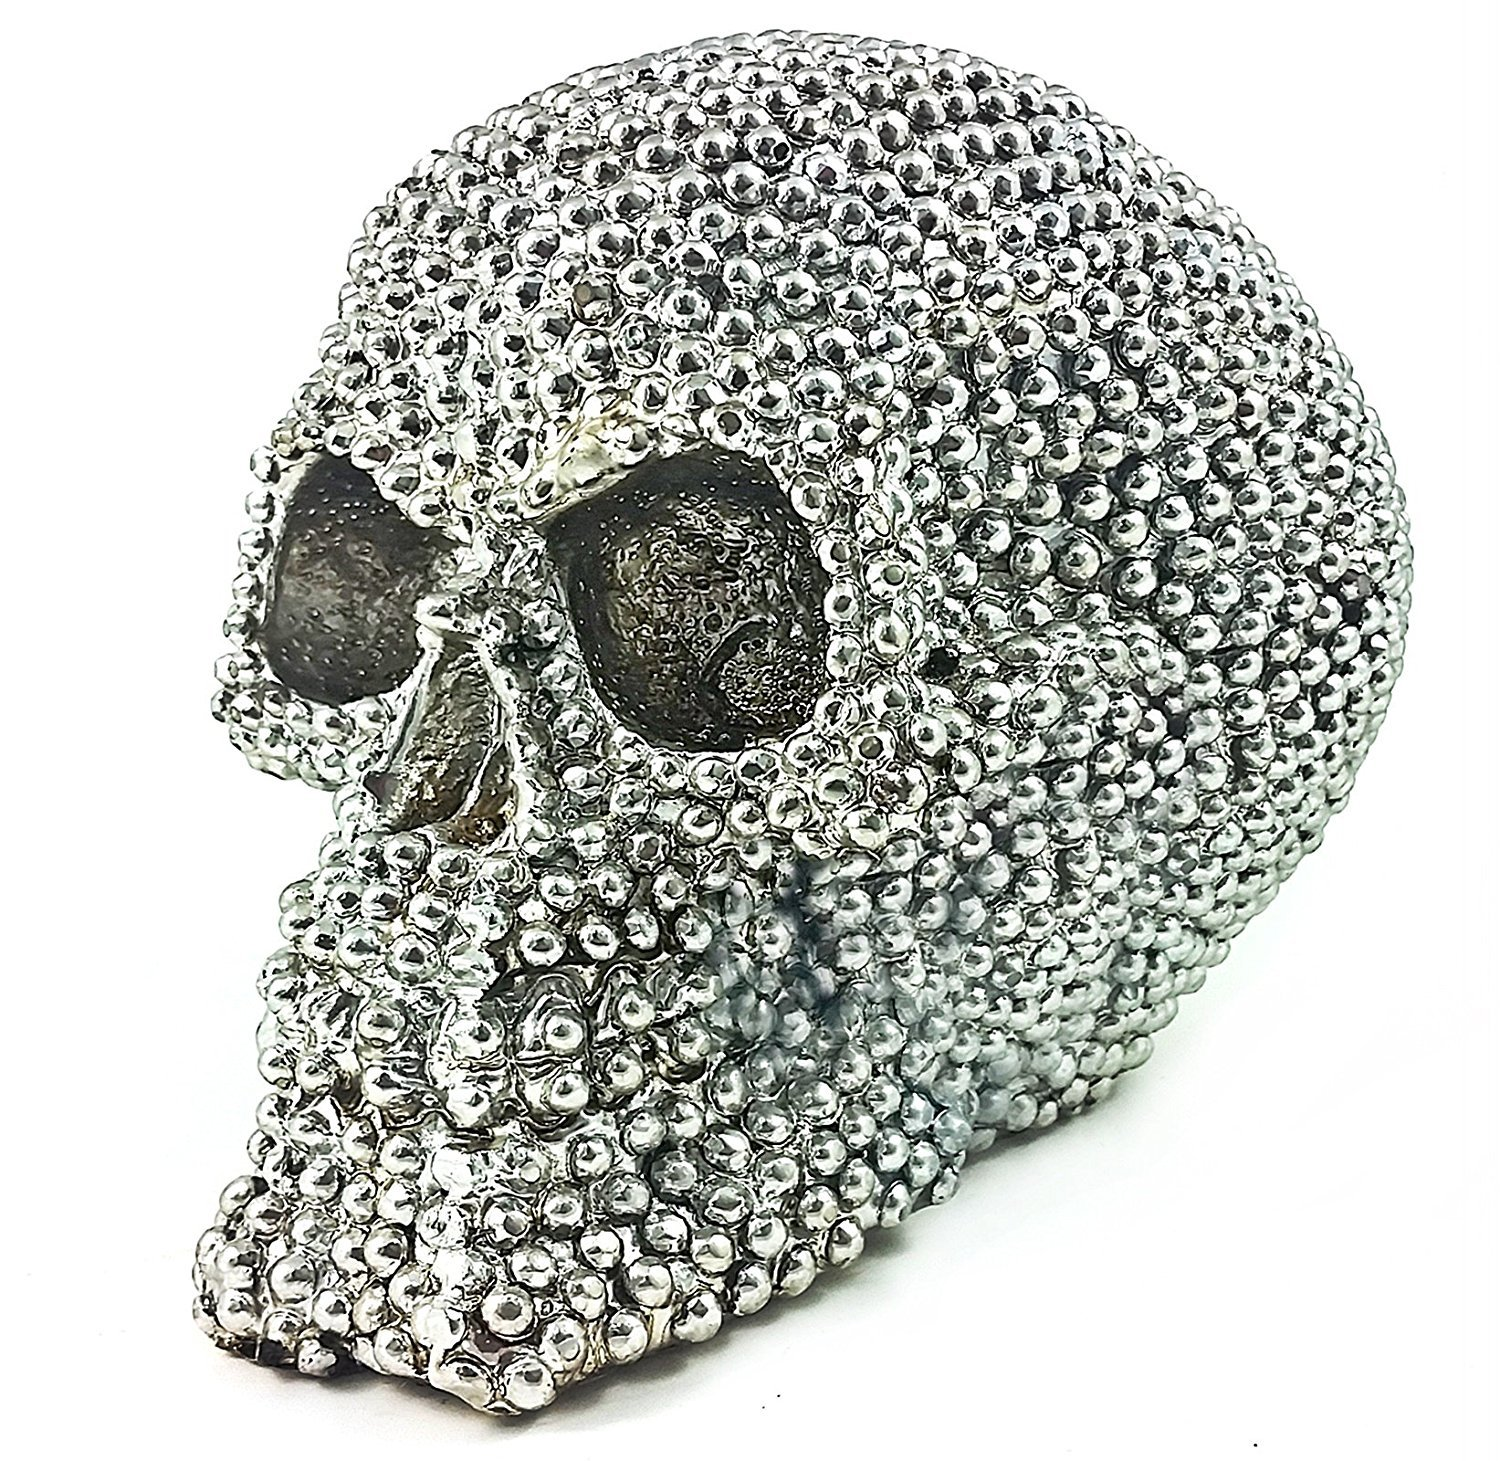 Realistic Replica Human Skull Statue with Silver Stone Sculpture Figure Skeleton Limited by Albela Bellaa